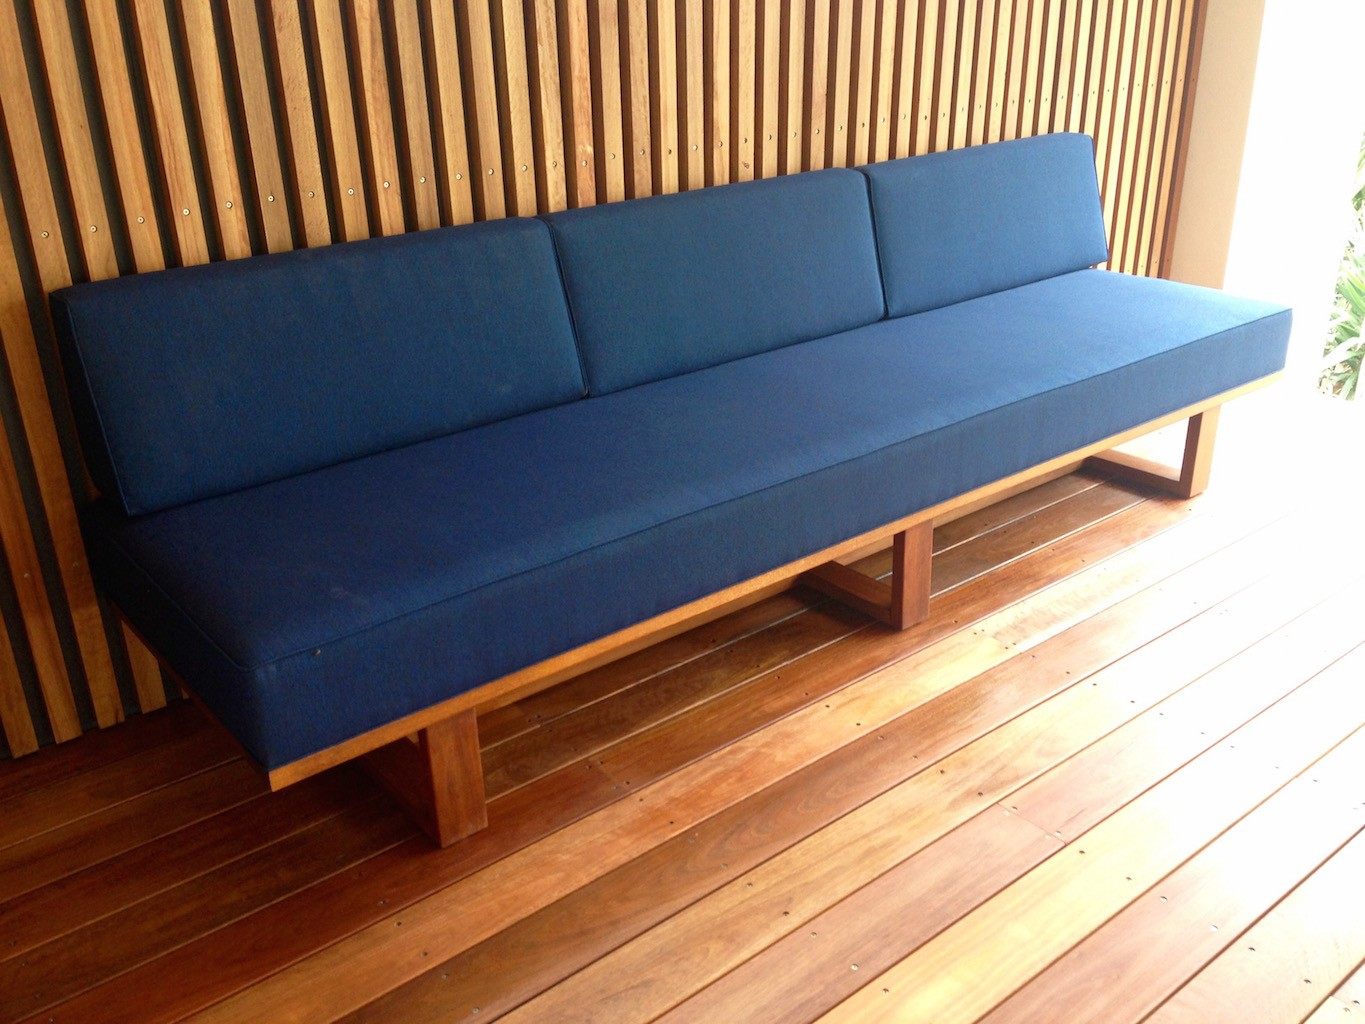 founds' custom made Norrebro daybed - ideal for outdoor use